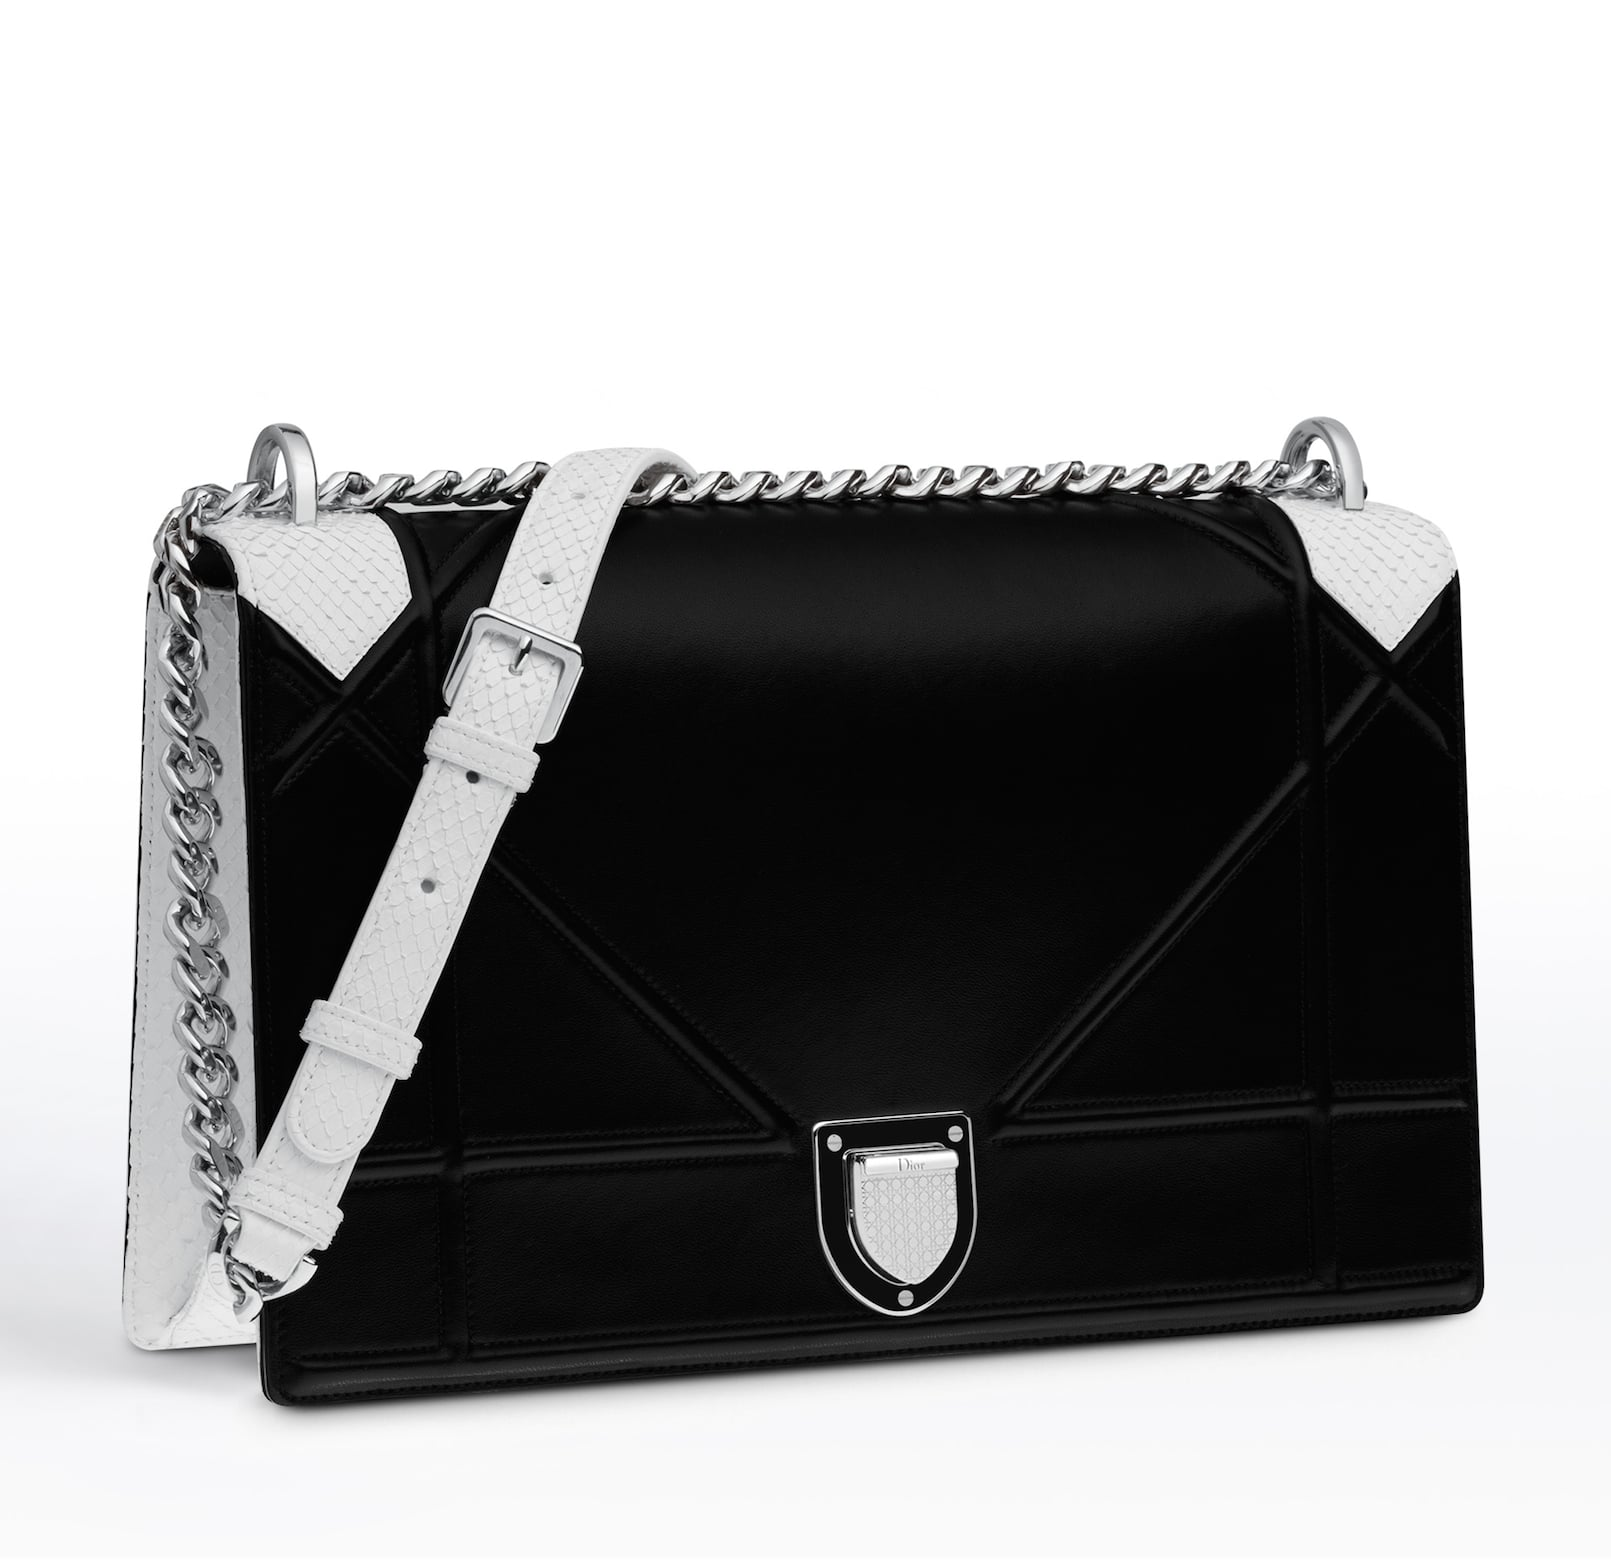 f2098a5303c5 Dior Diorama Flap Bag Reference Guide